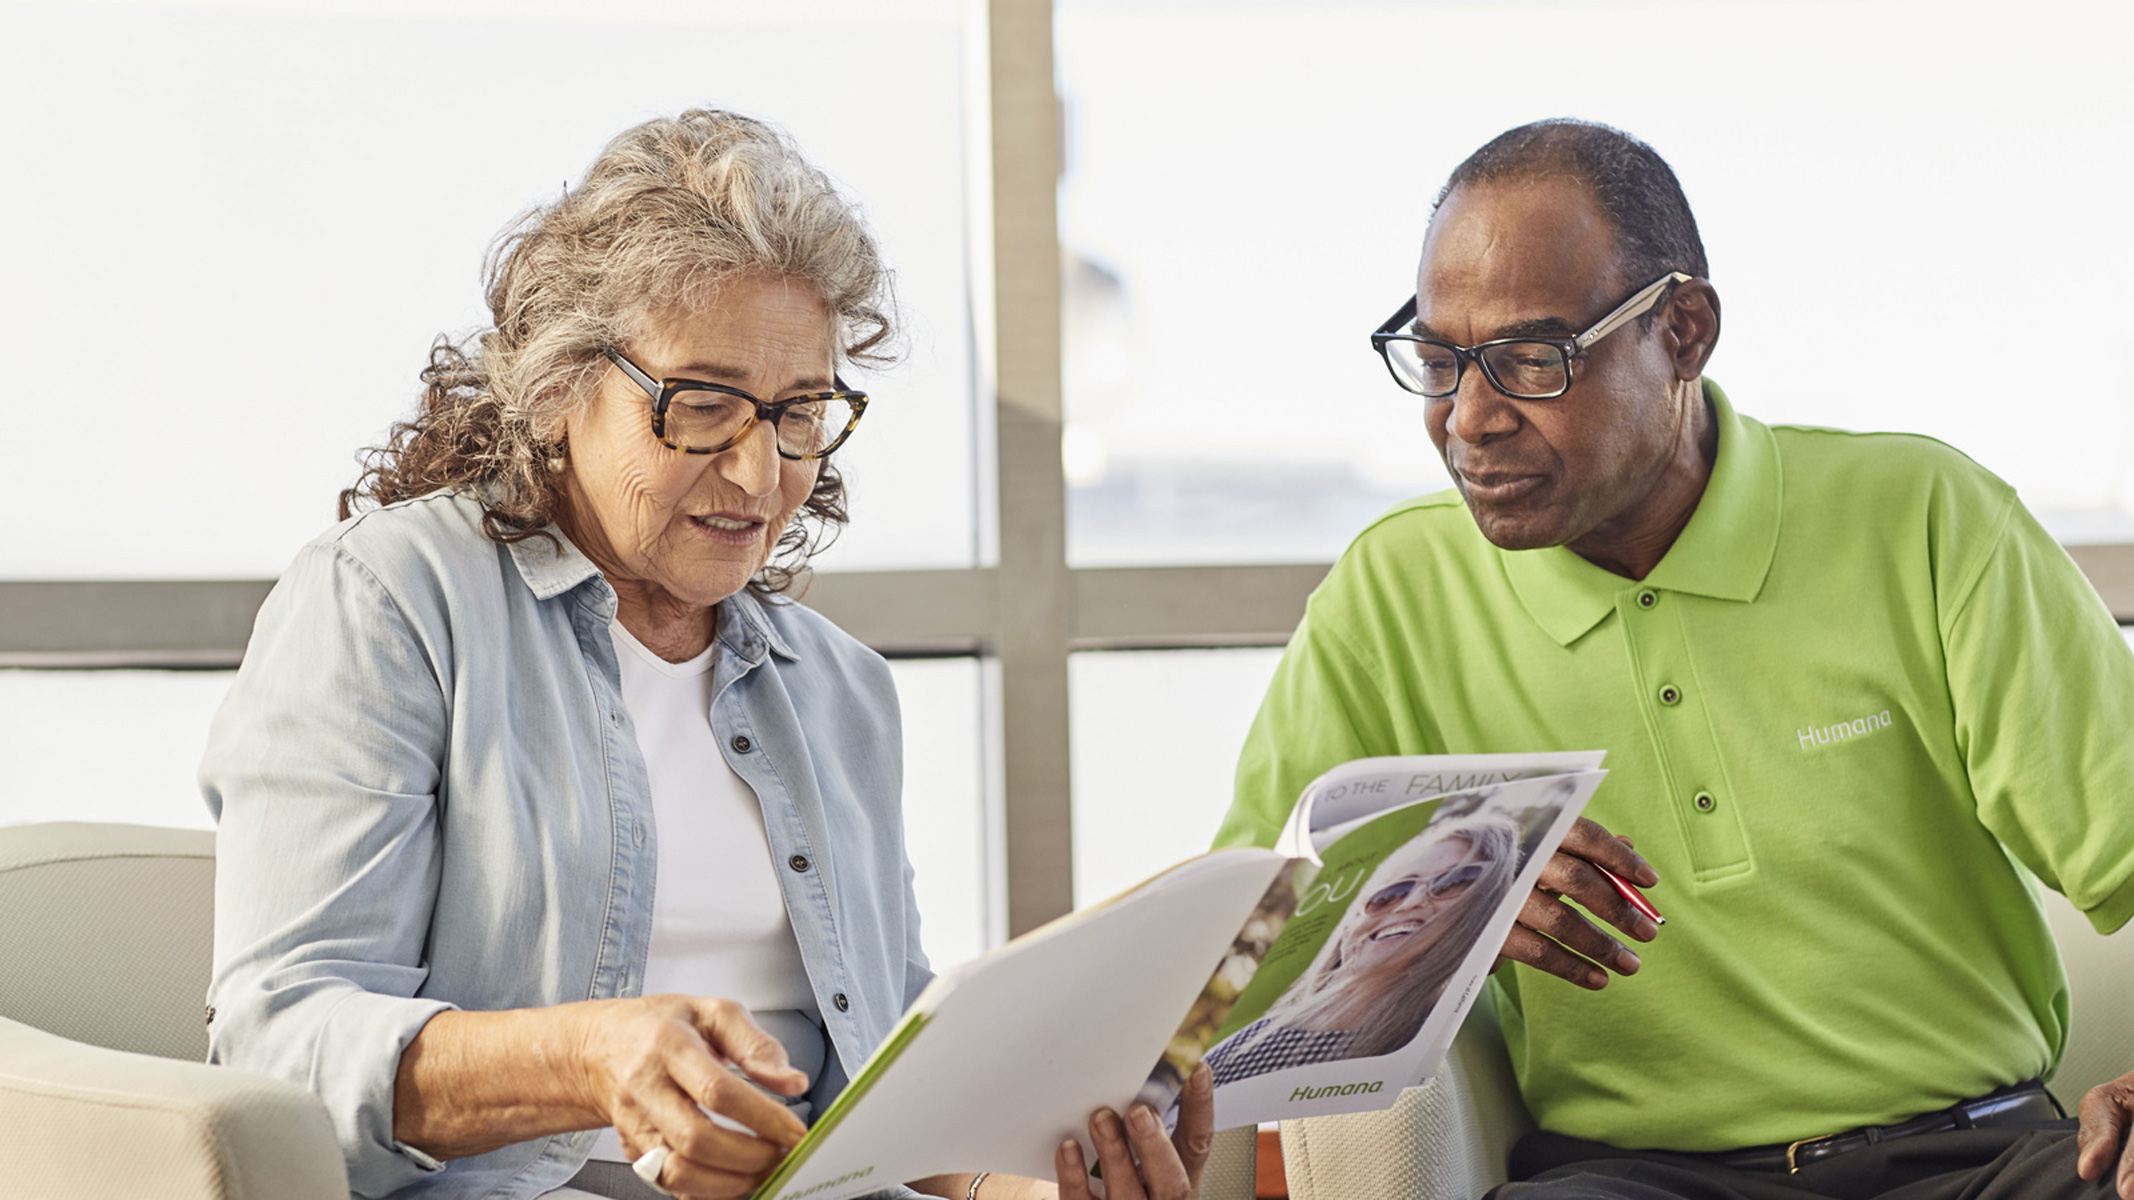 Two senior citizens read through a brochure on Humana insurance plans.